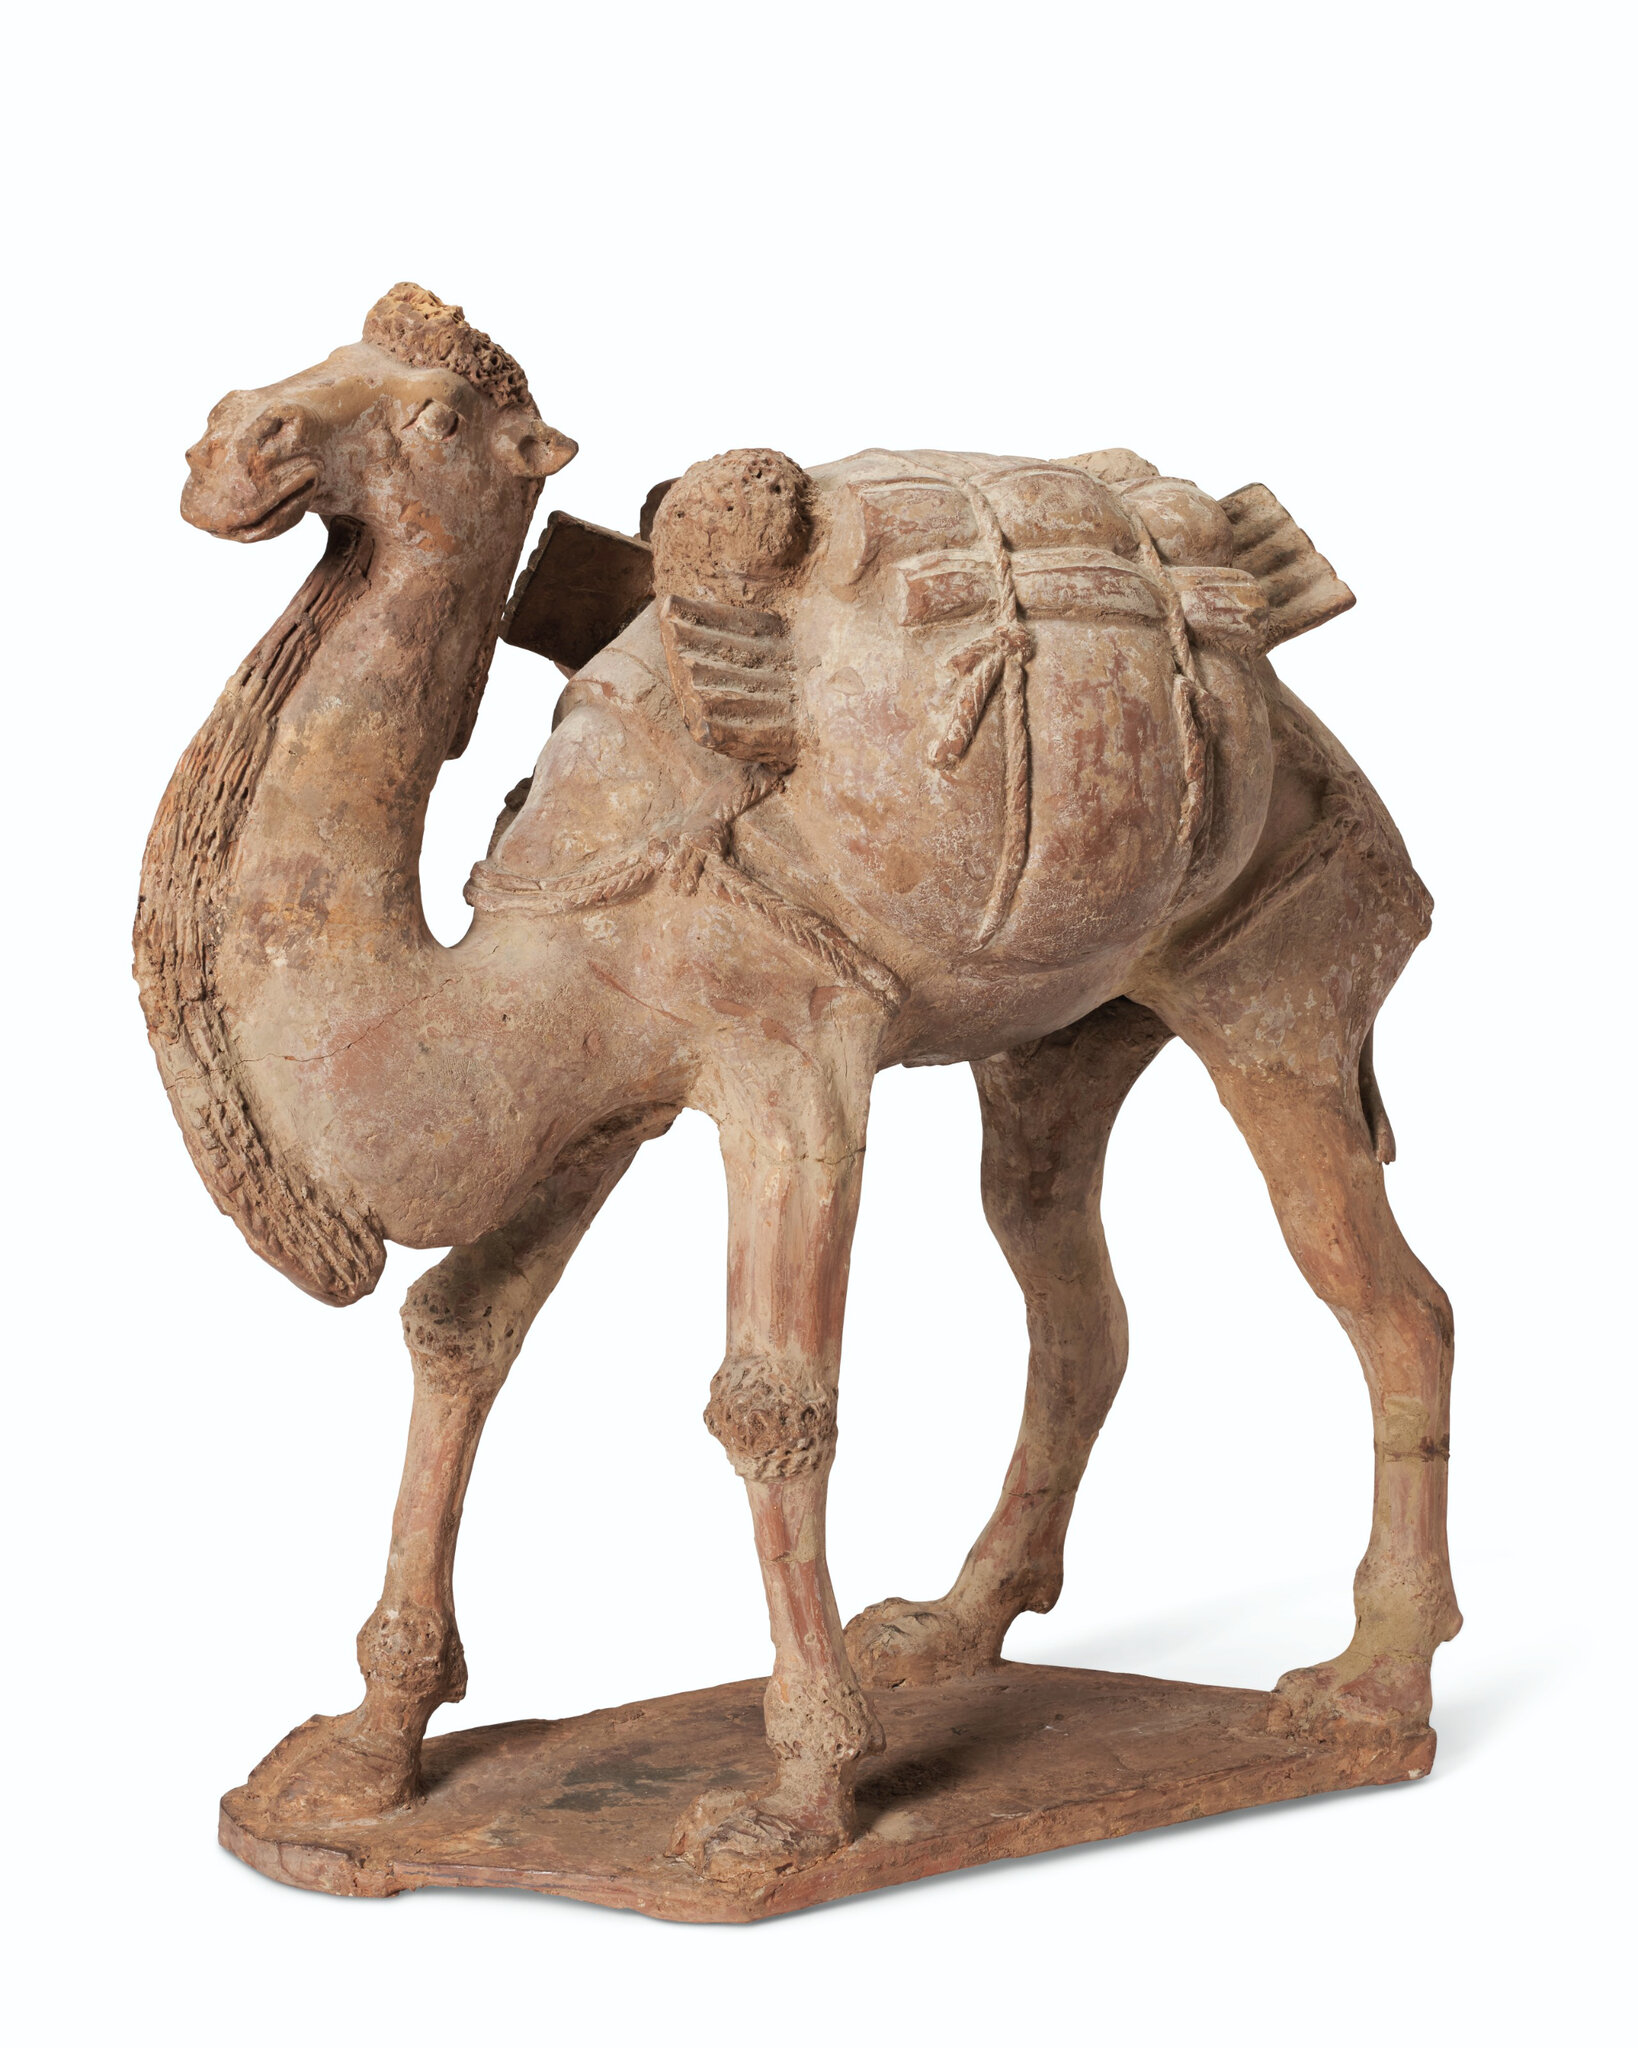 A painted pottery figure of a striding Bactrian camel, Tang dynasty (AD 618-907)